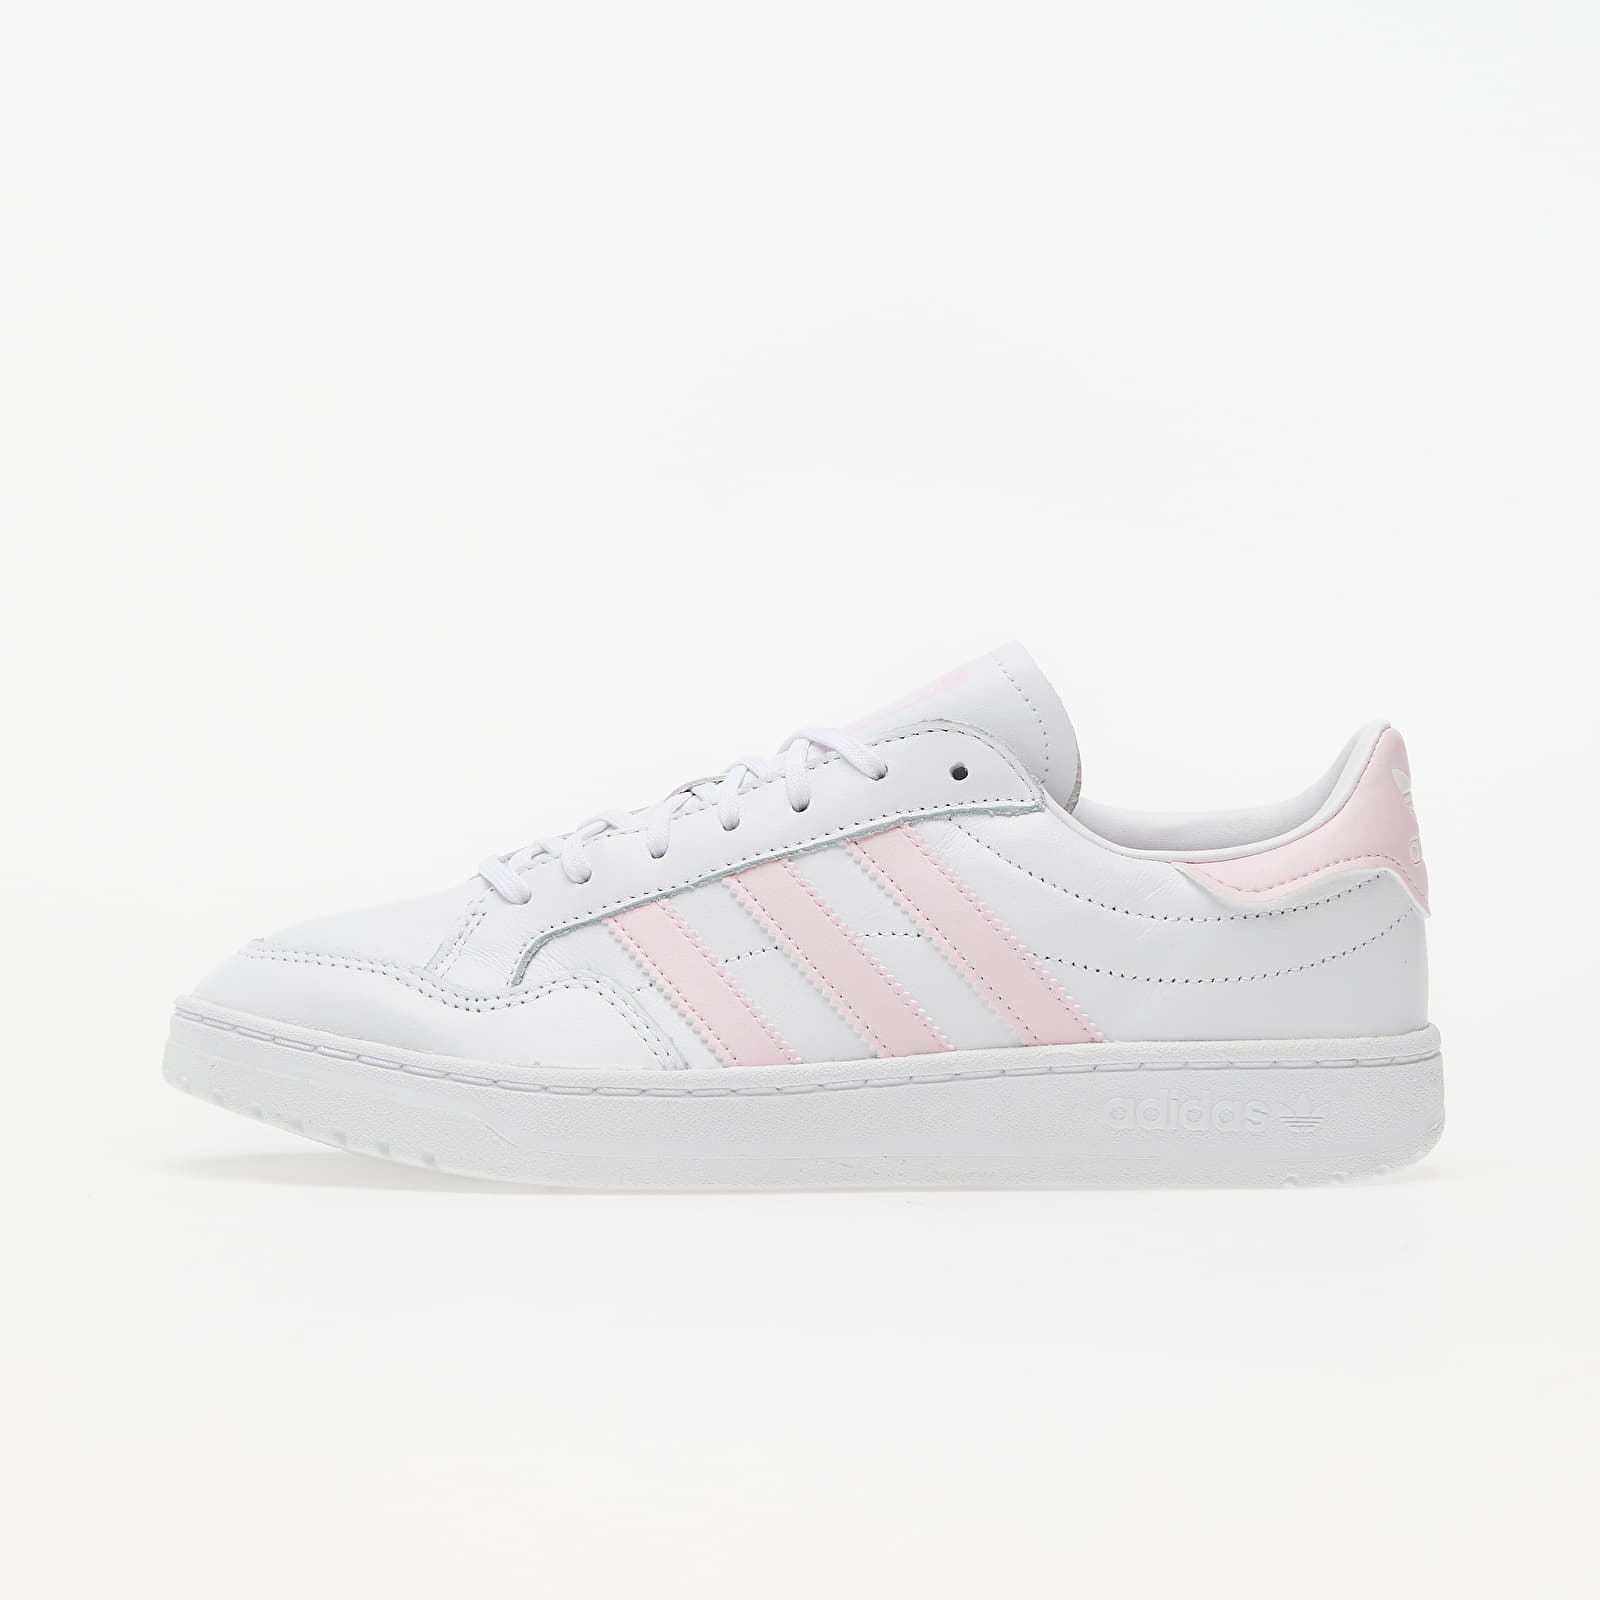 Dámske topánky a tenisky adidas Team Court W Ftw White/ Clear Pink/ Clear Pink